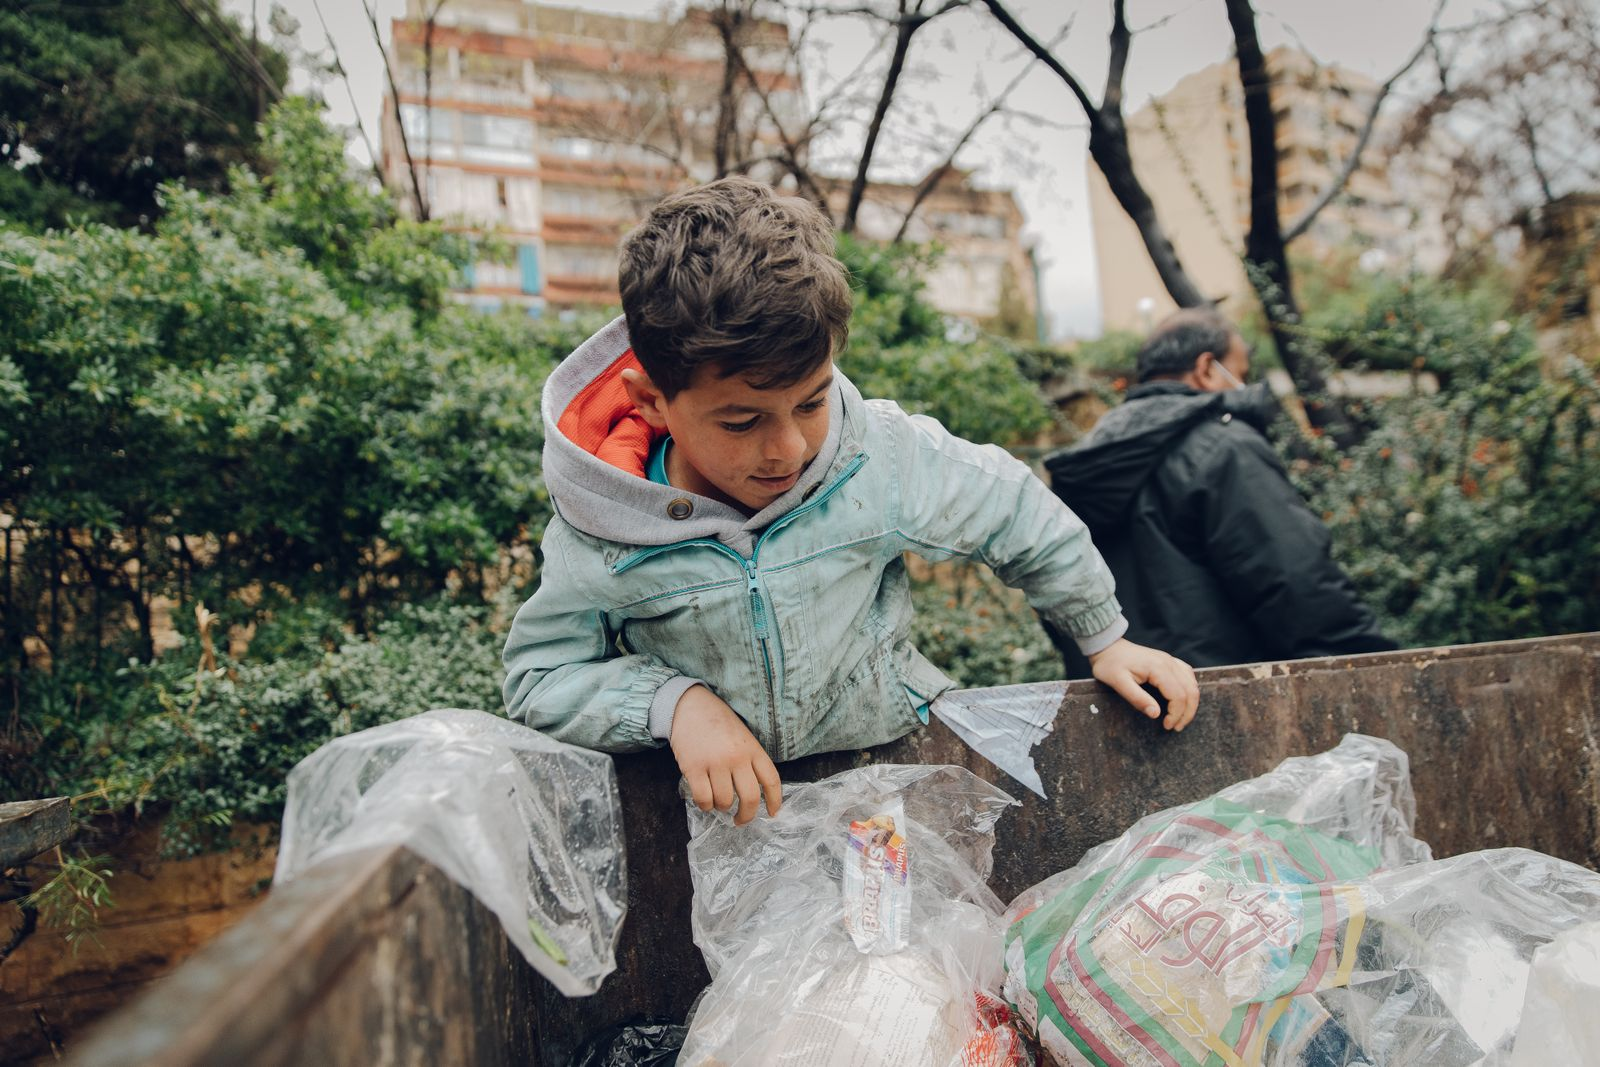 Klenner_Maria_Libanon_Recycling_11